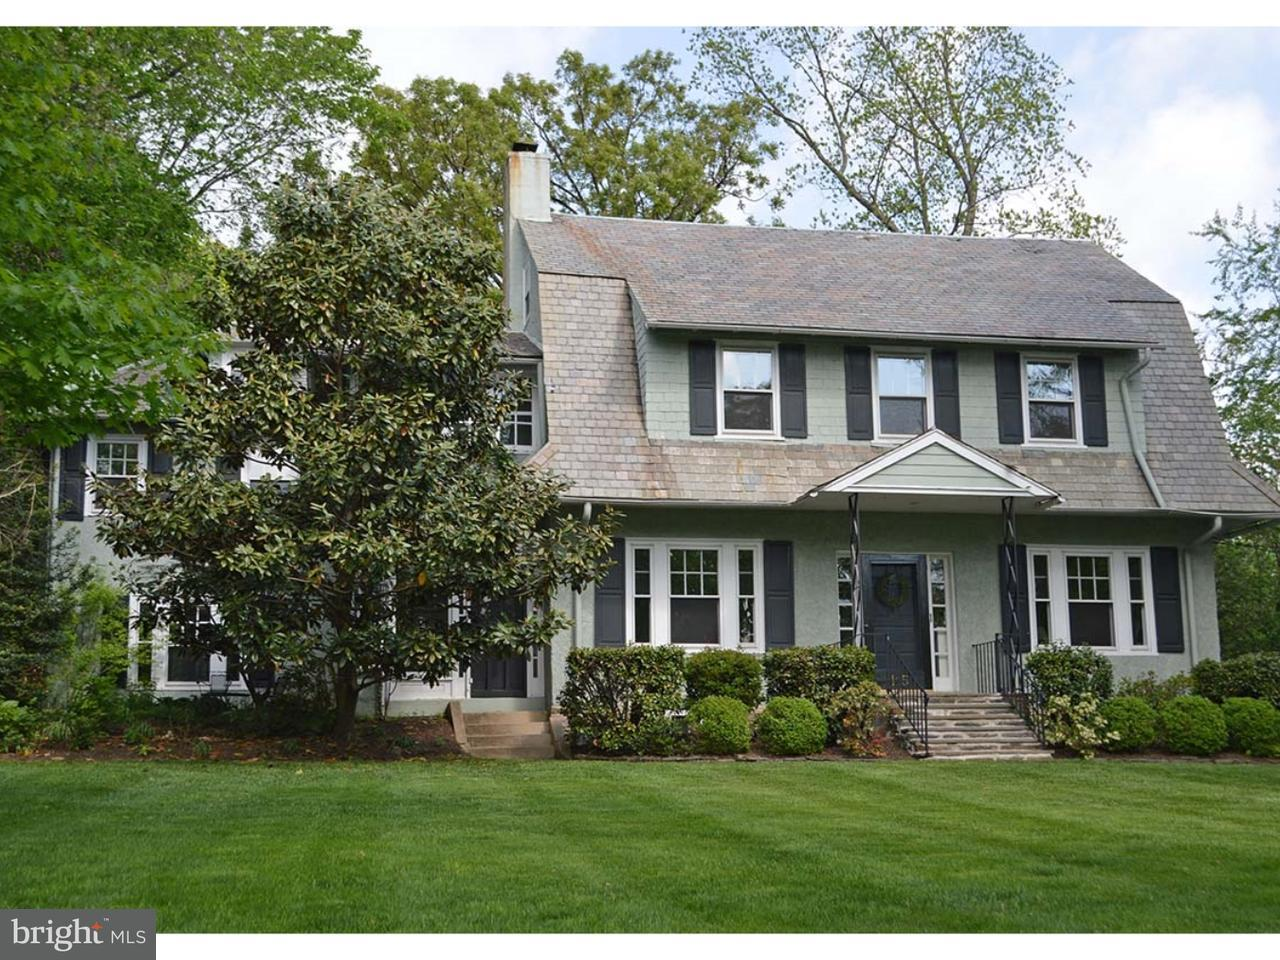 Single Family Home for Sale at 115 OGDEN Avenue Swarthmore, Pennsylvania 19081 United States